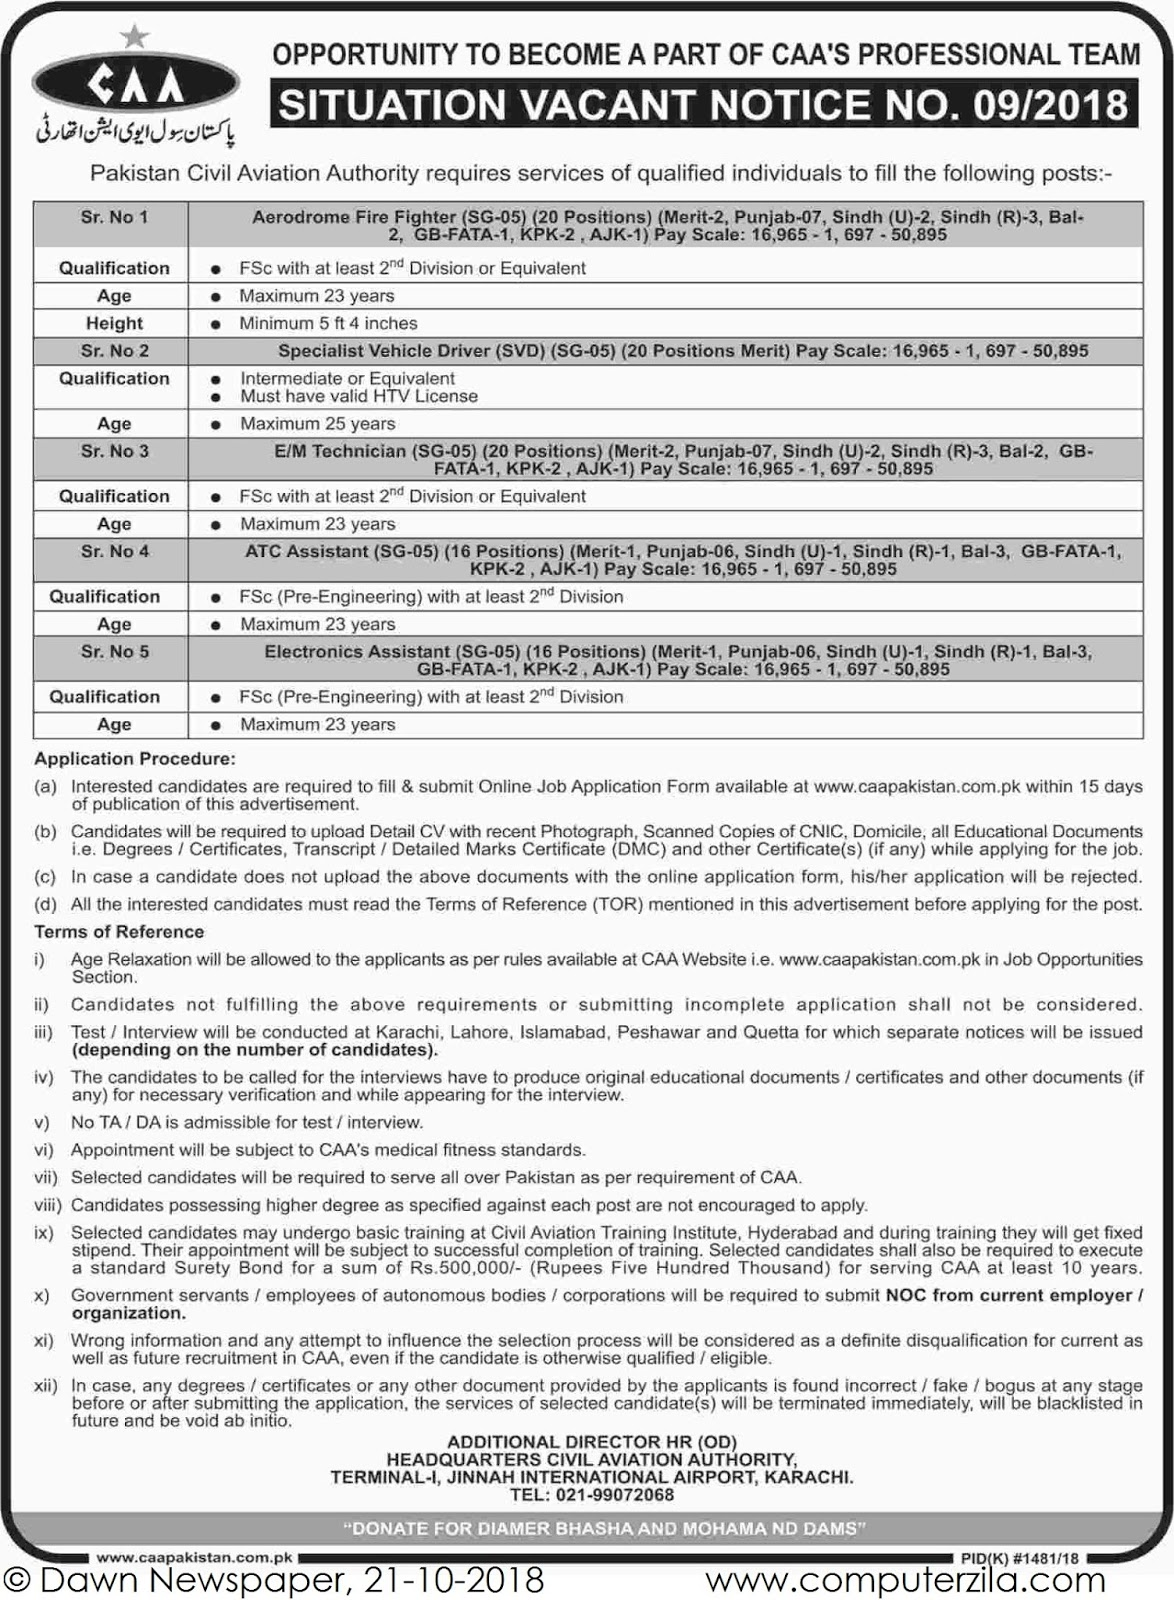 Situation Vacant at Pakistan Civil Aviation Authority